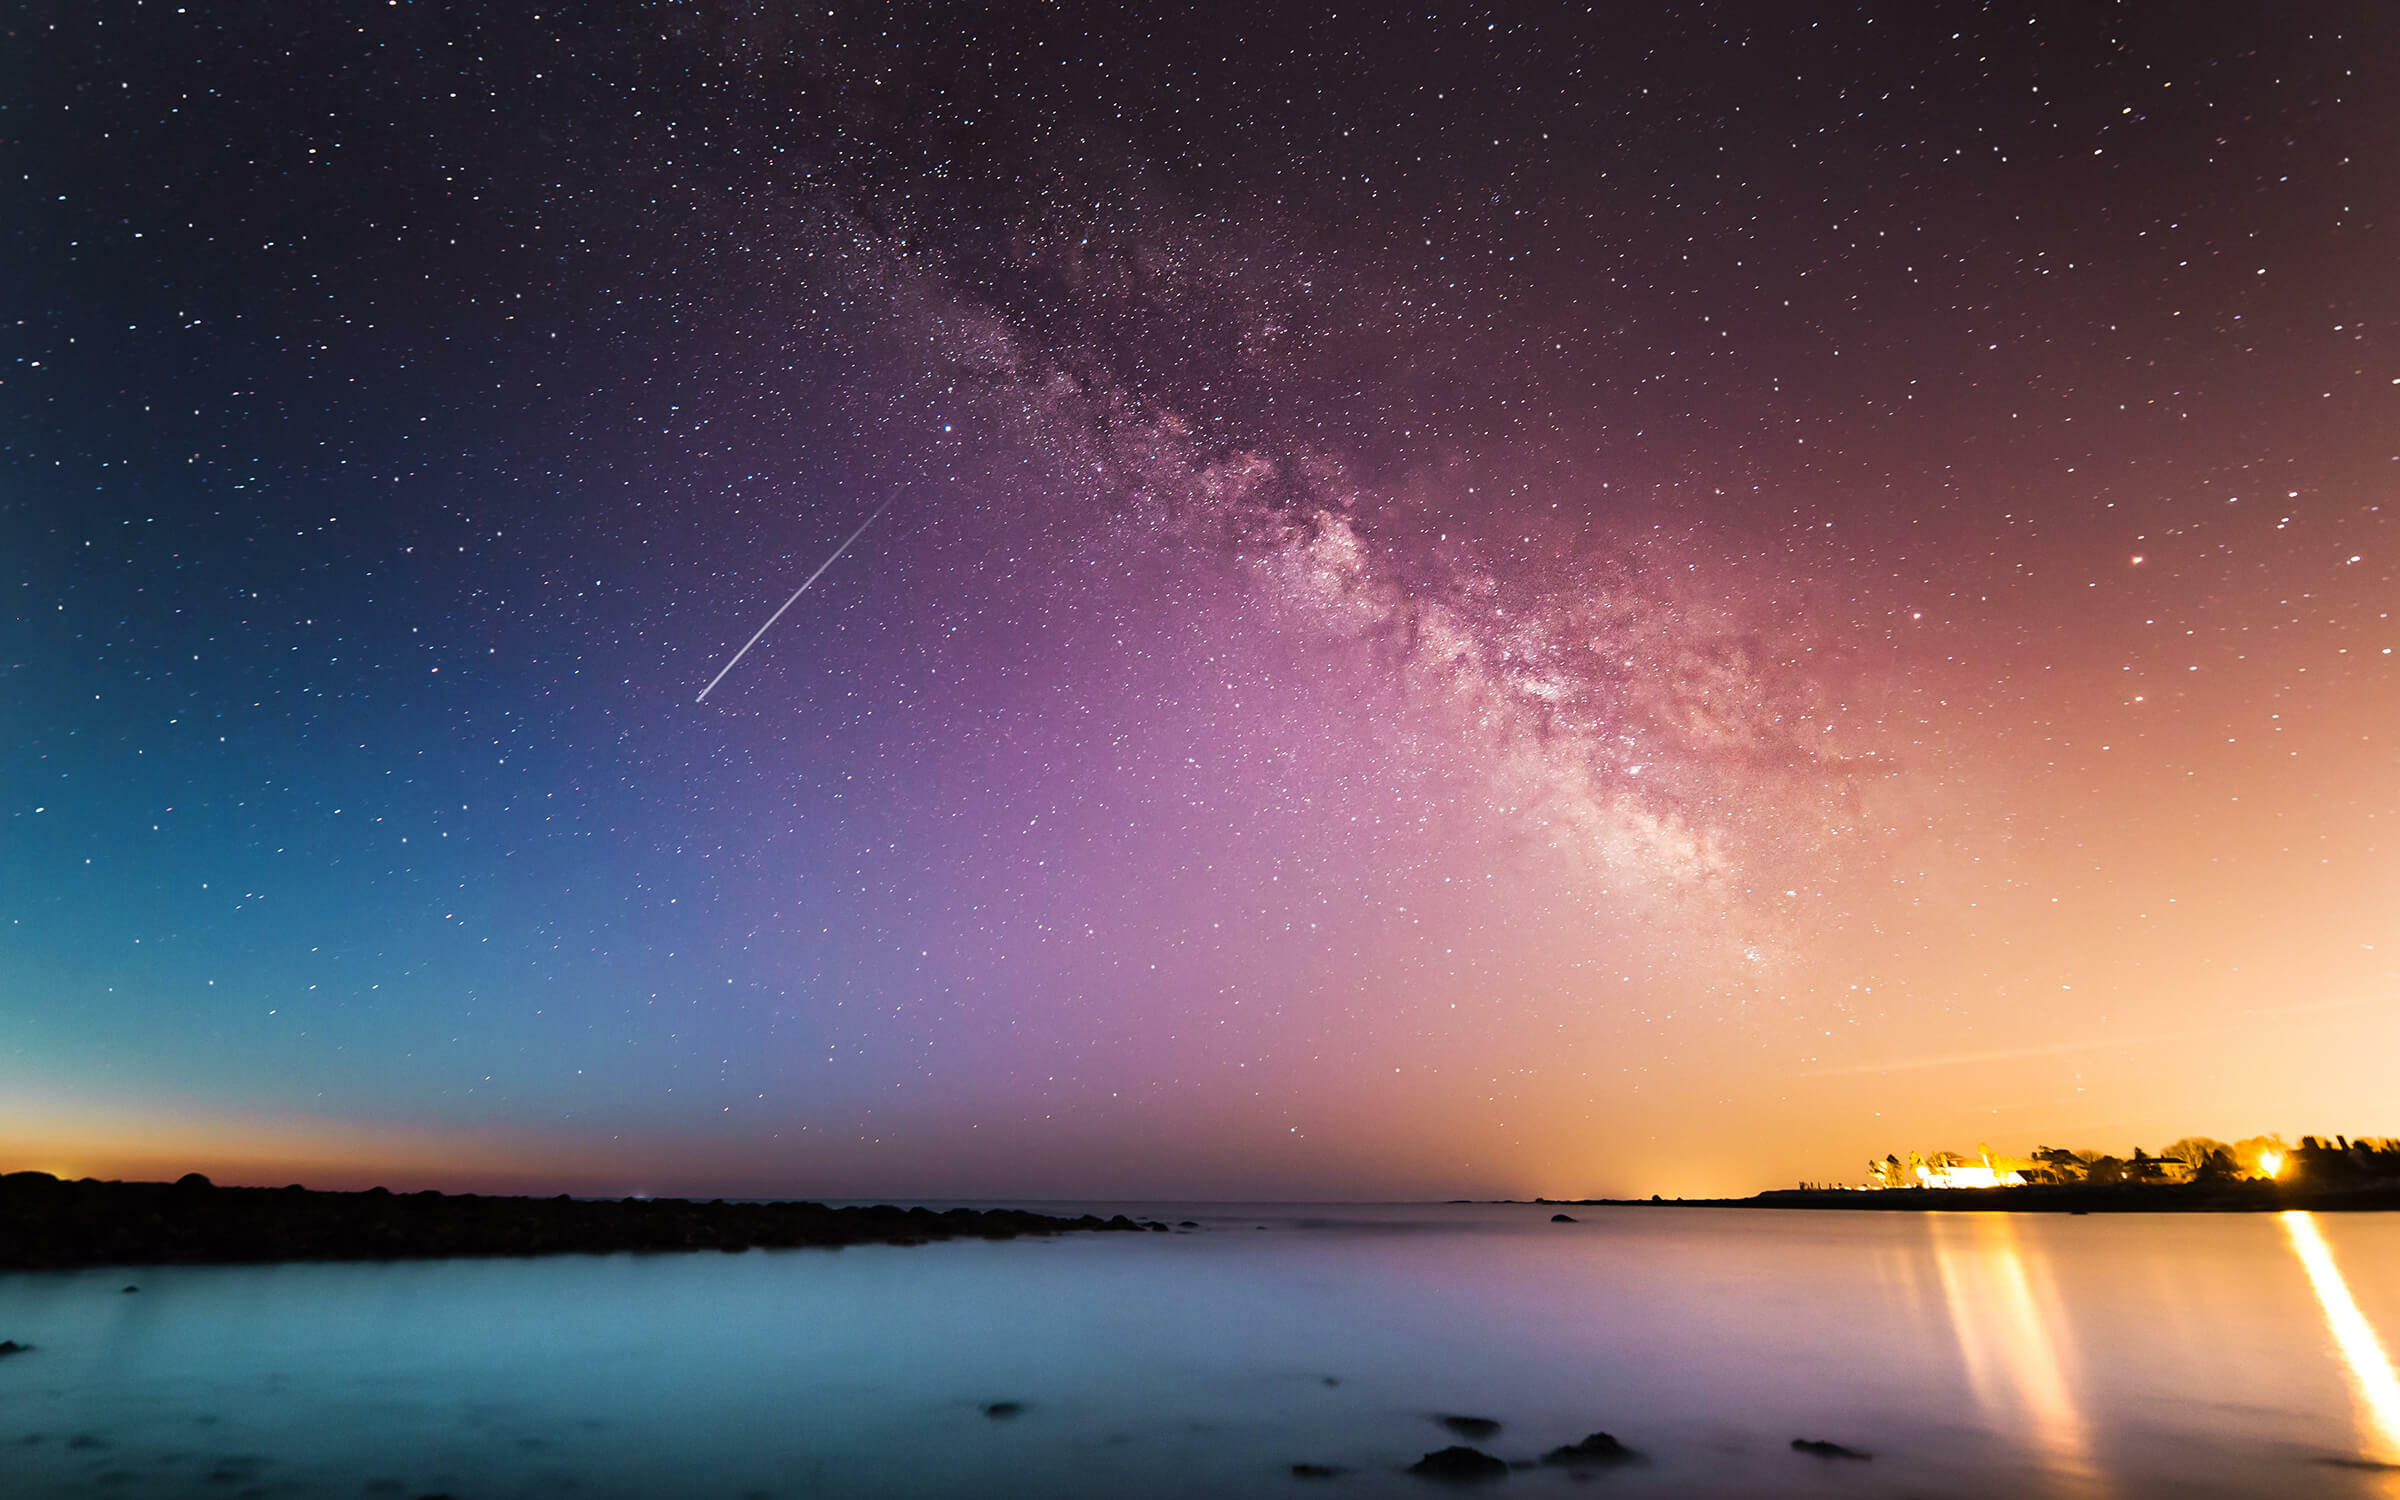 Colorful starry sky over water and land